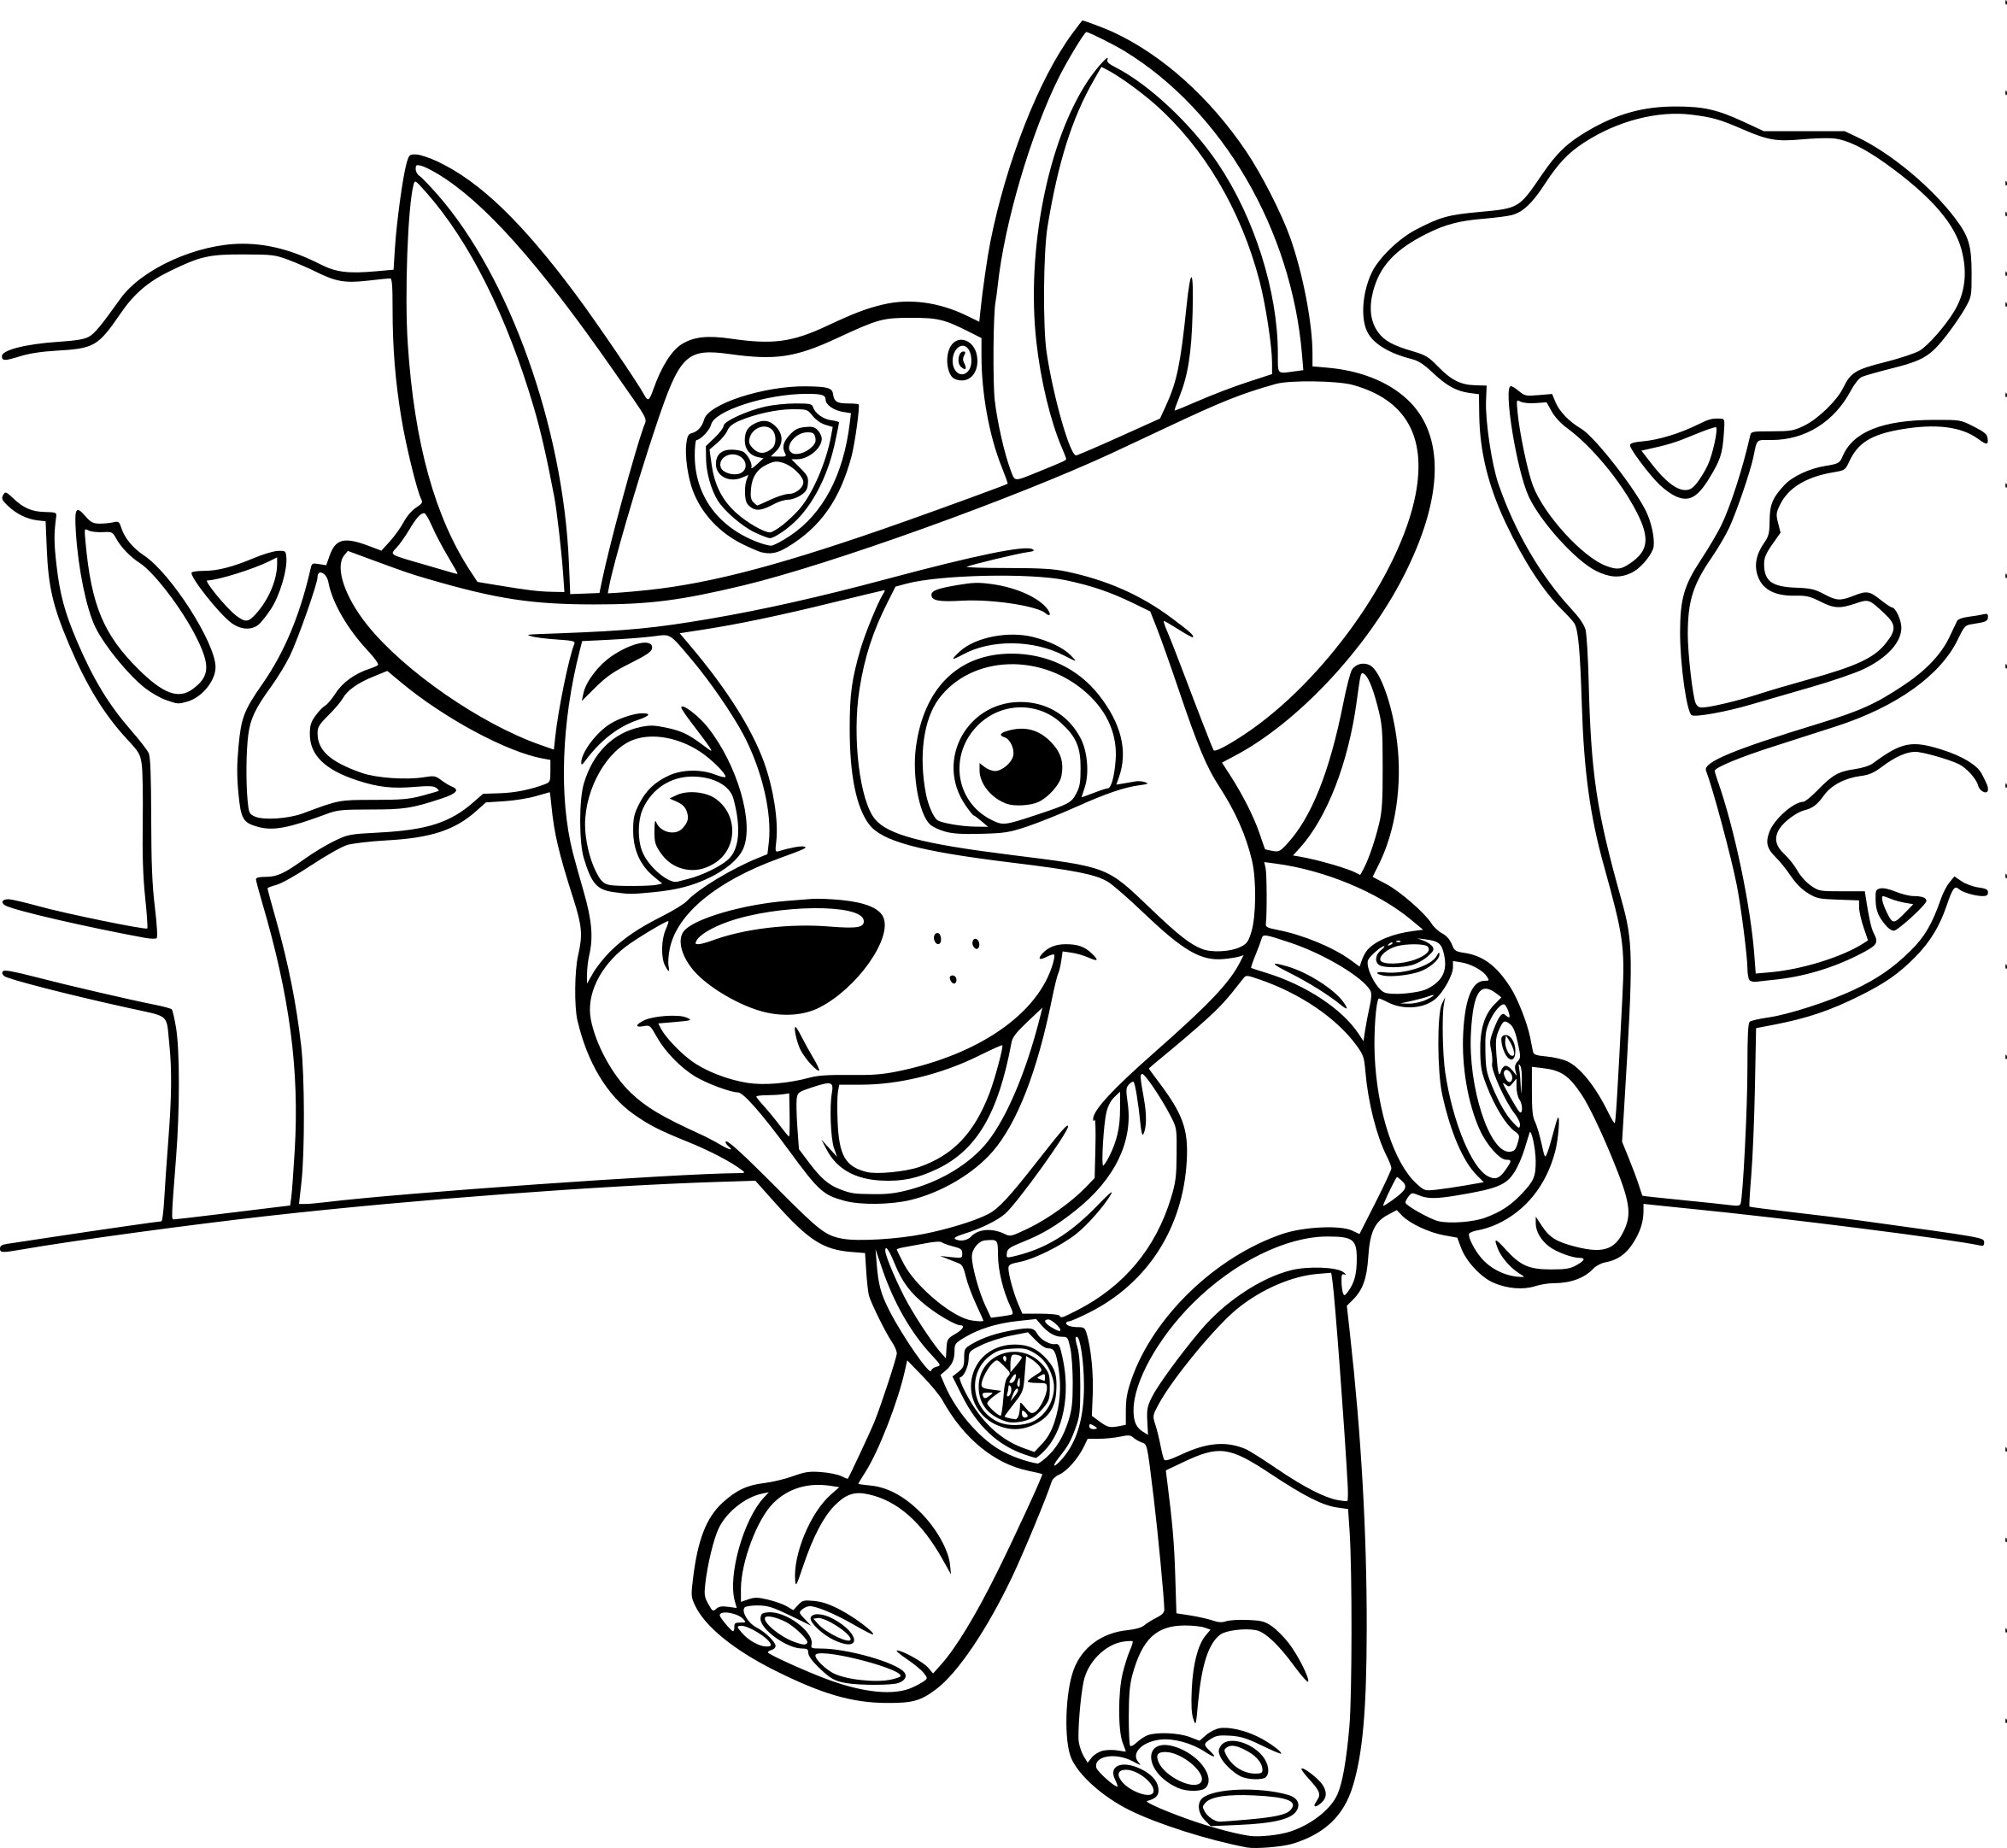 paw patrol free coloring pages printable paw patrol coloring page coloring home coloring free patrol paw pages printable